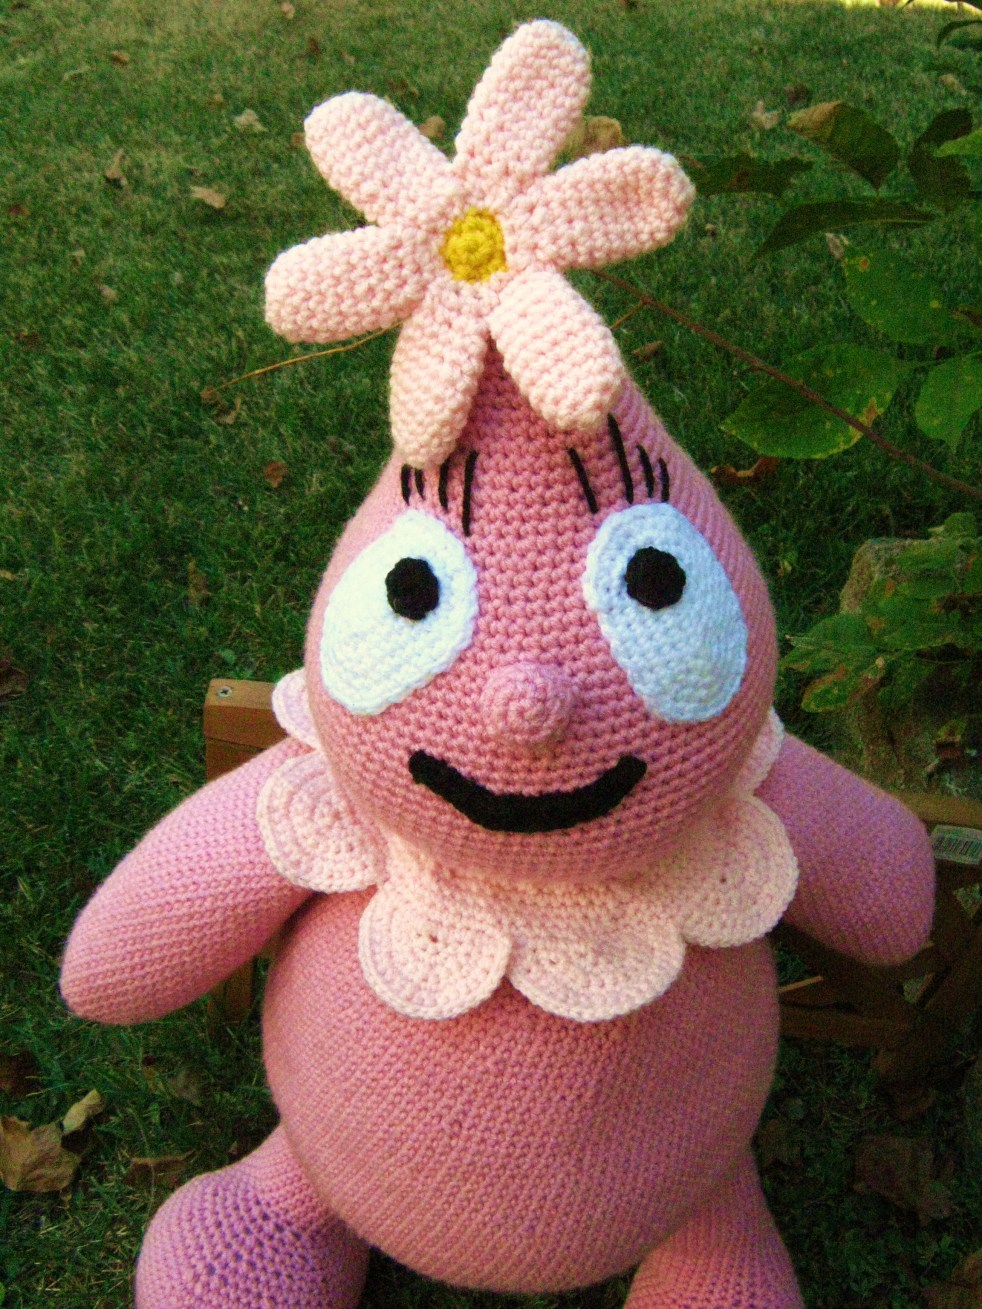 Crocheted plush foofa large